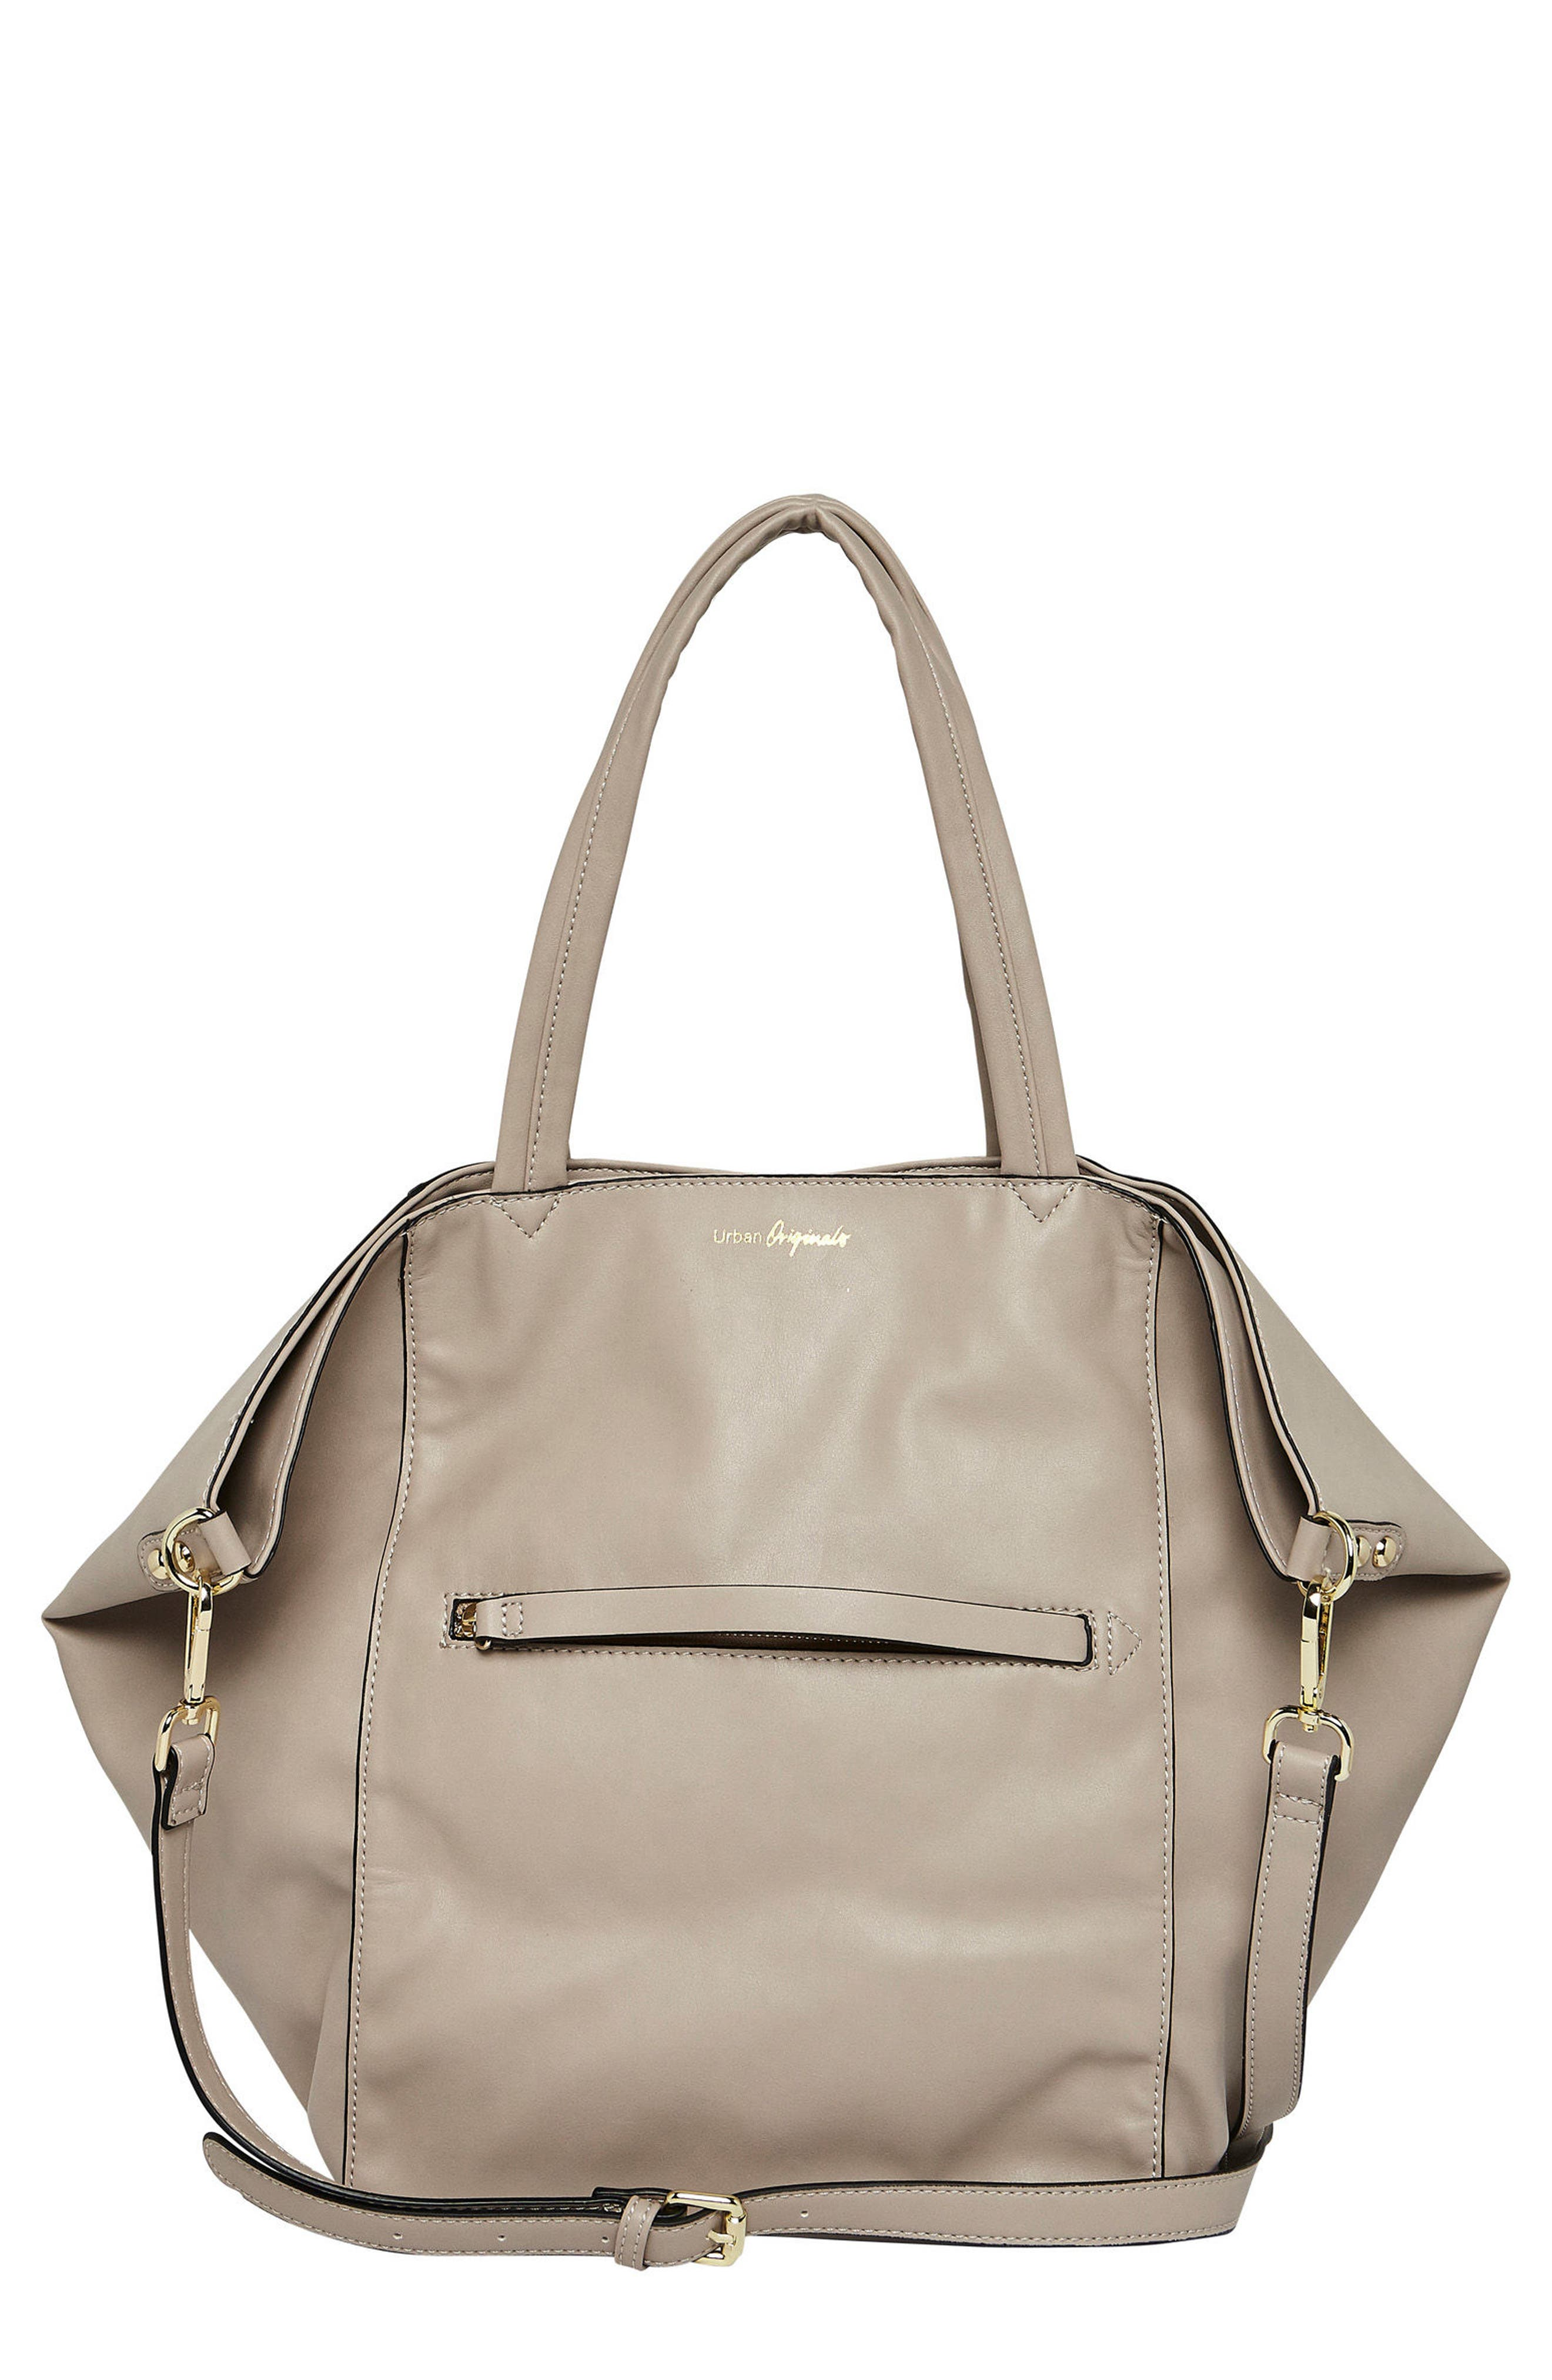 EVERY GIRL VEGAN LEATHER TOTE - GREY